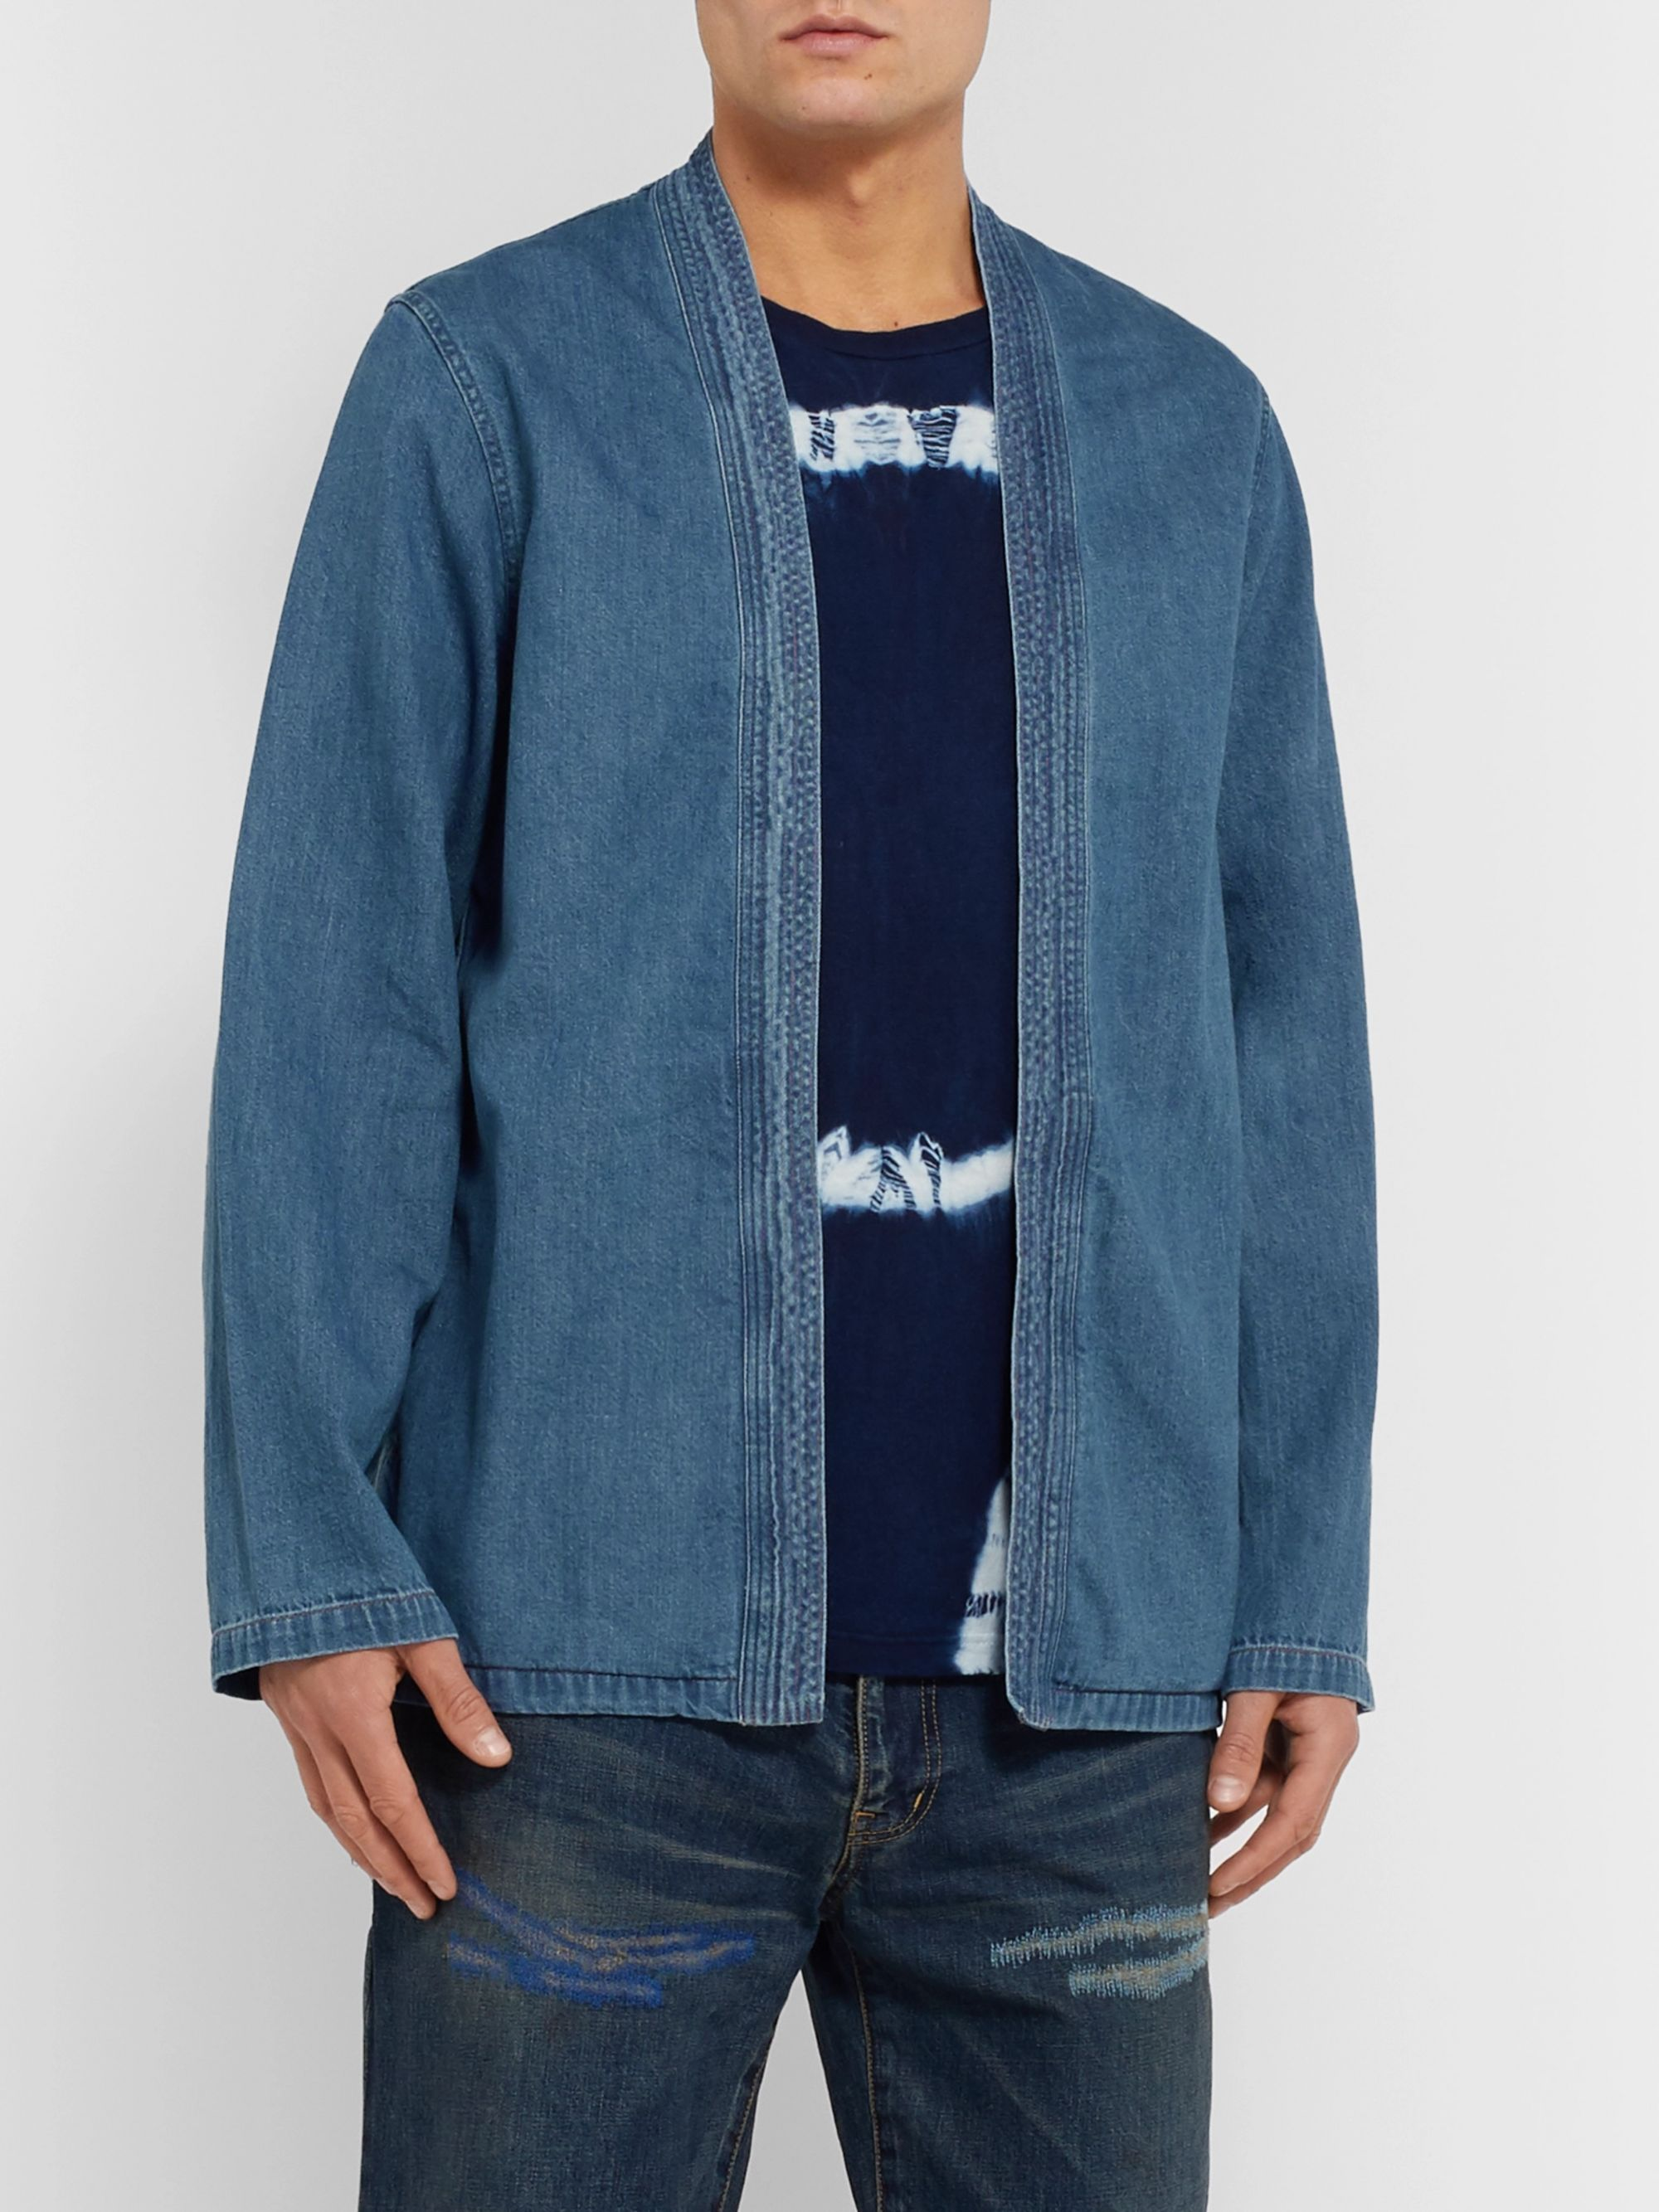 KAPITAL Cotton-Chambray Jacket